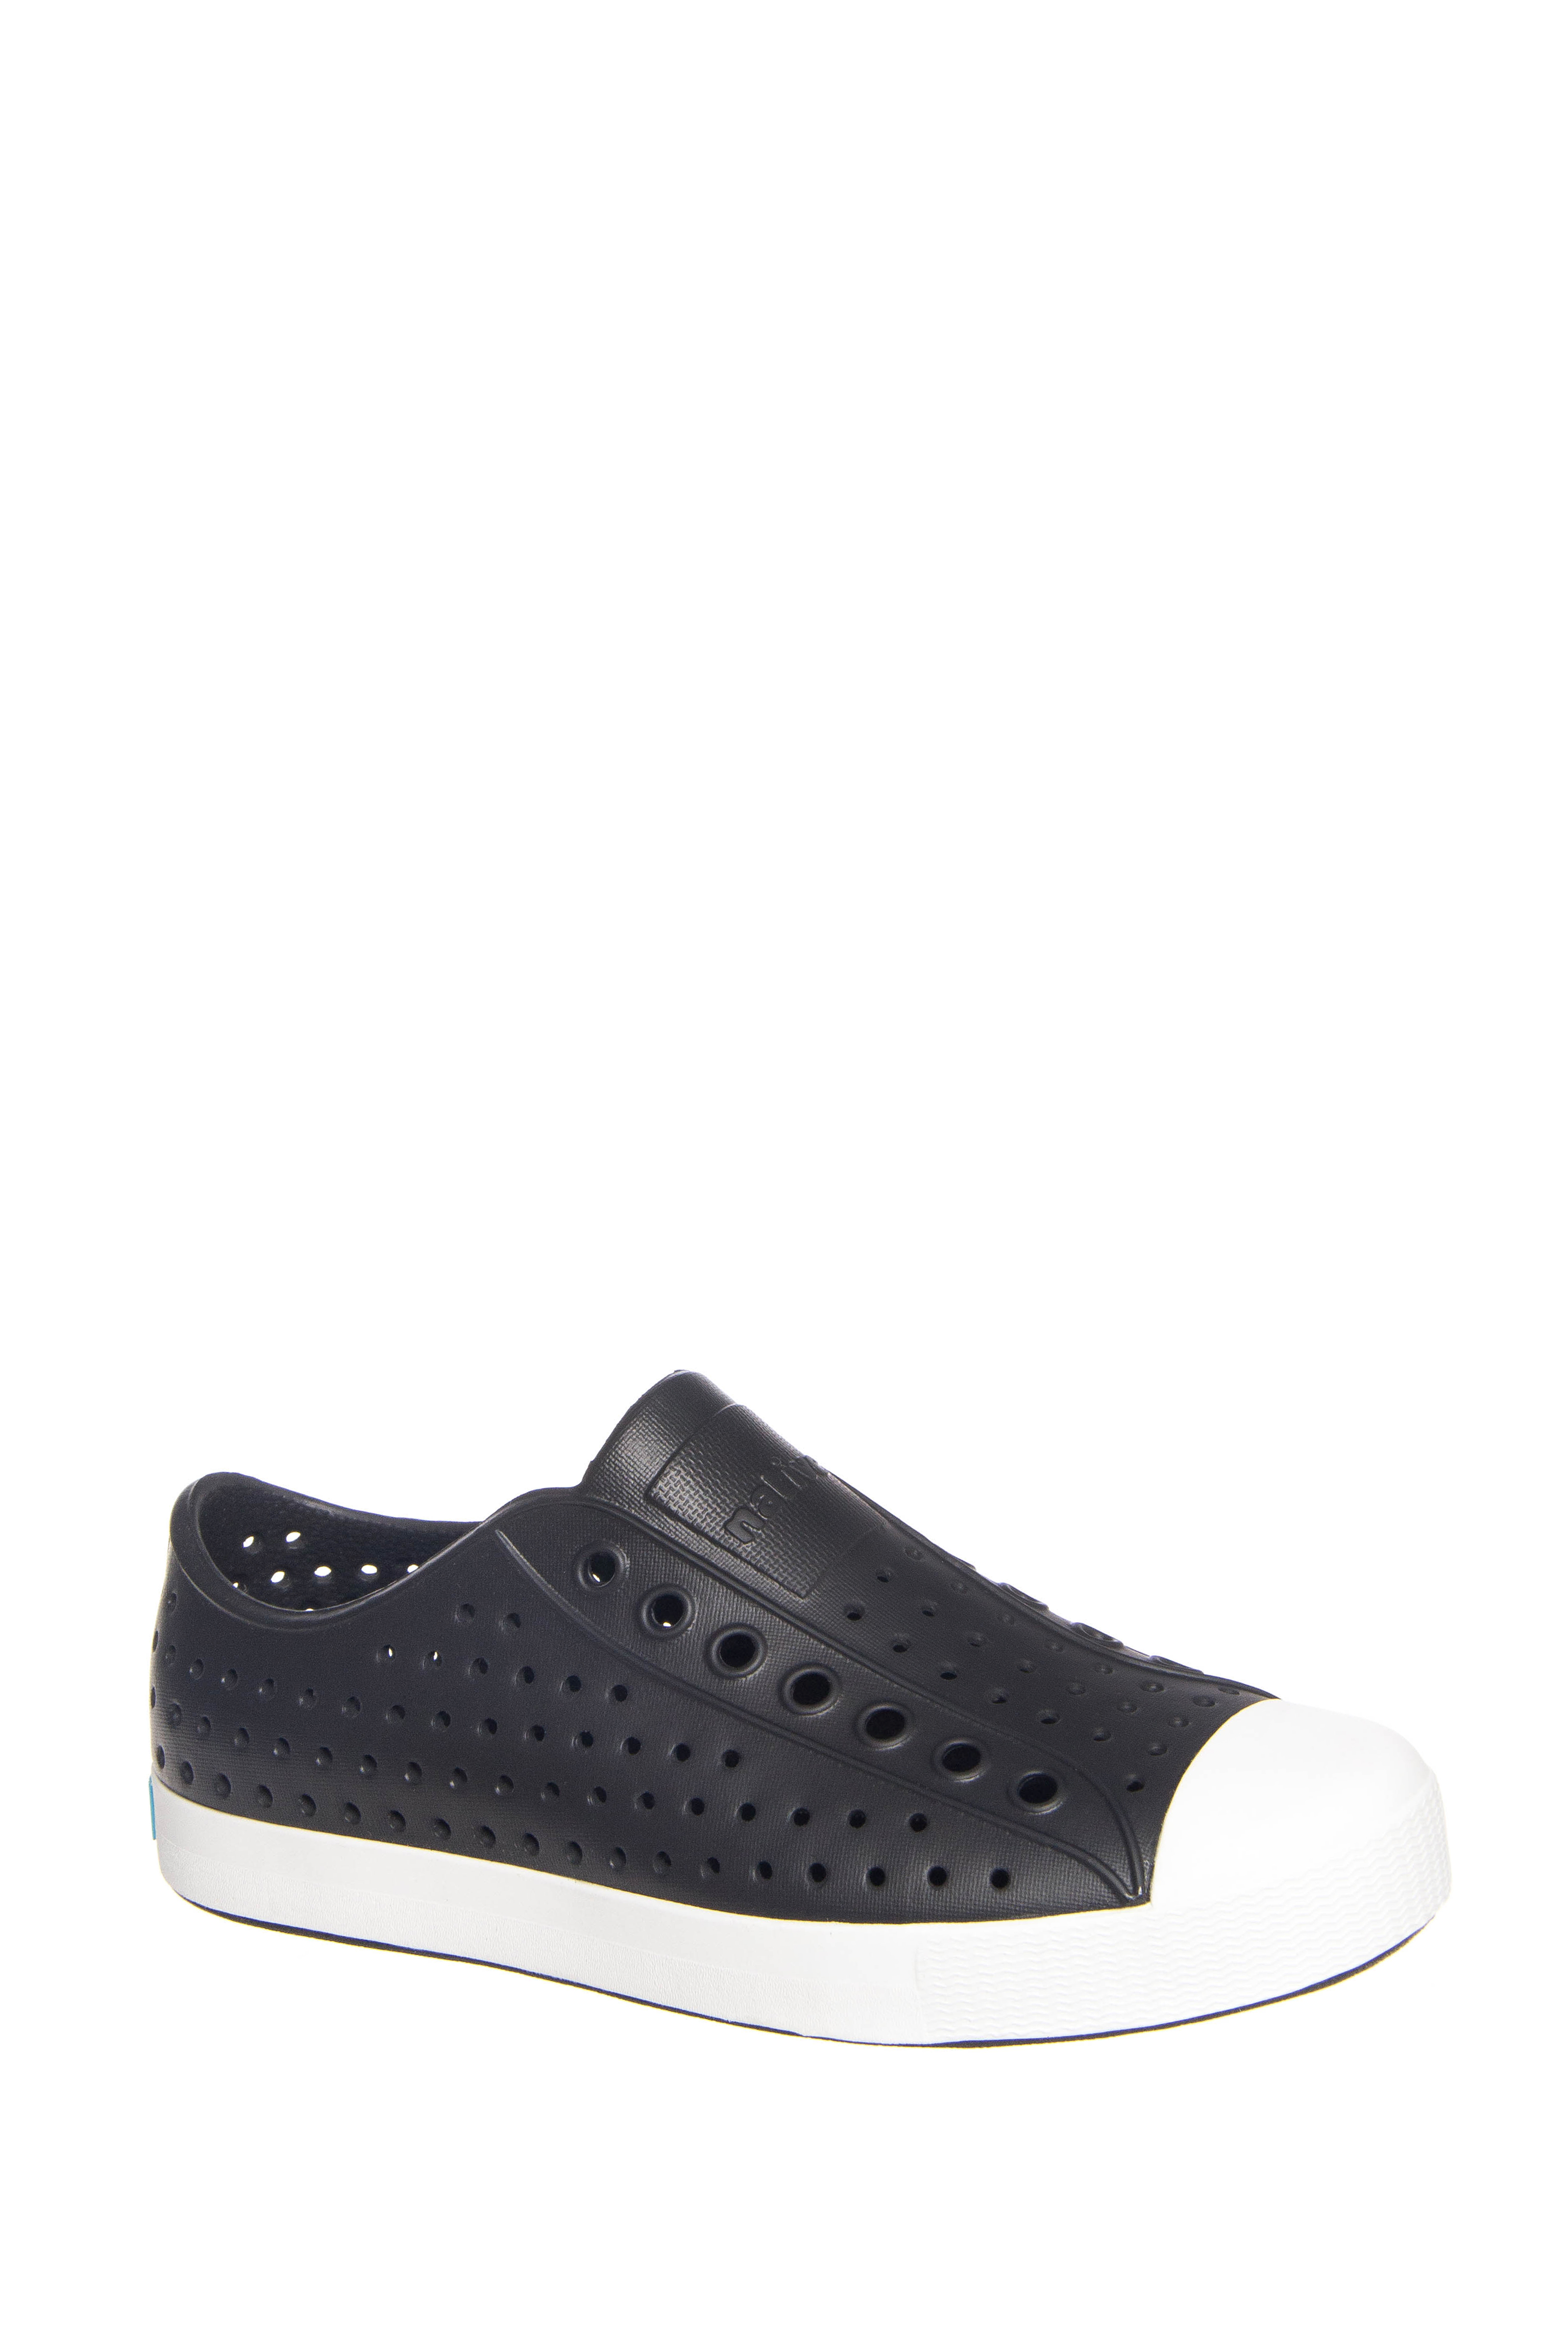 Native Unisex Jefferson Slip On Sneakers - Jiffy Black / Shell White